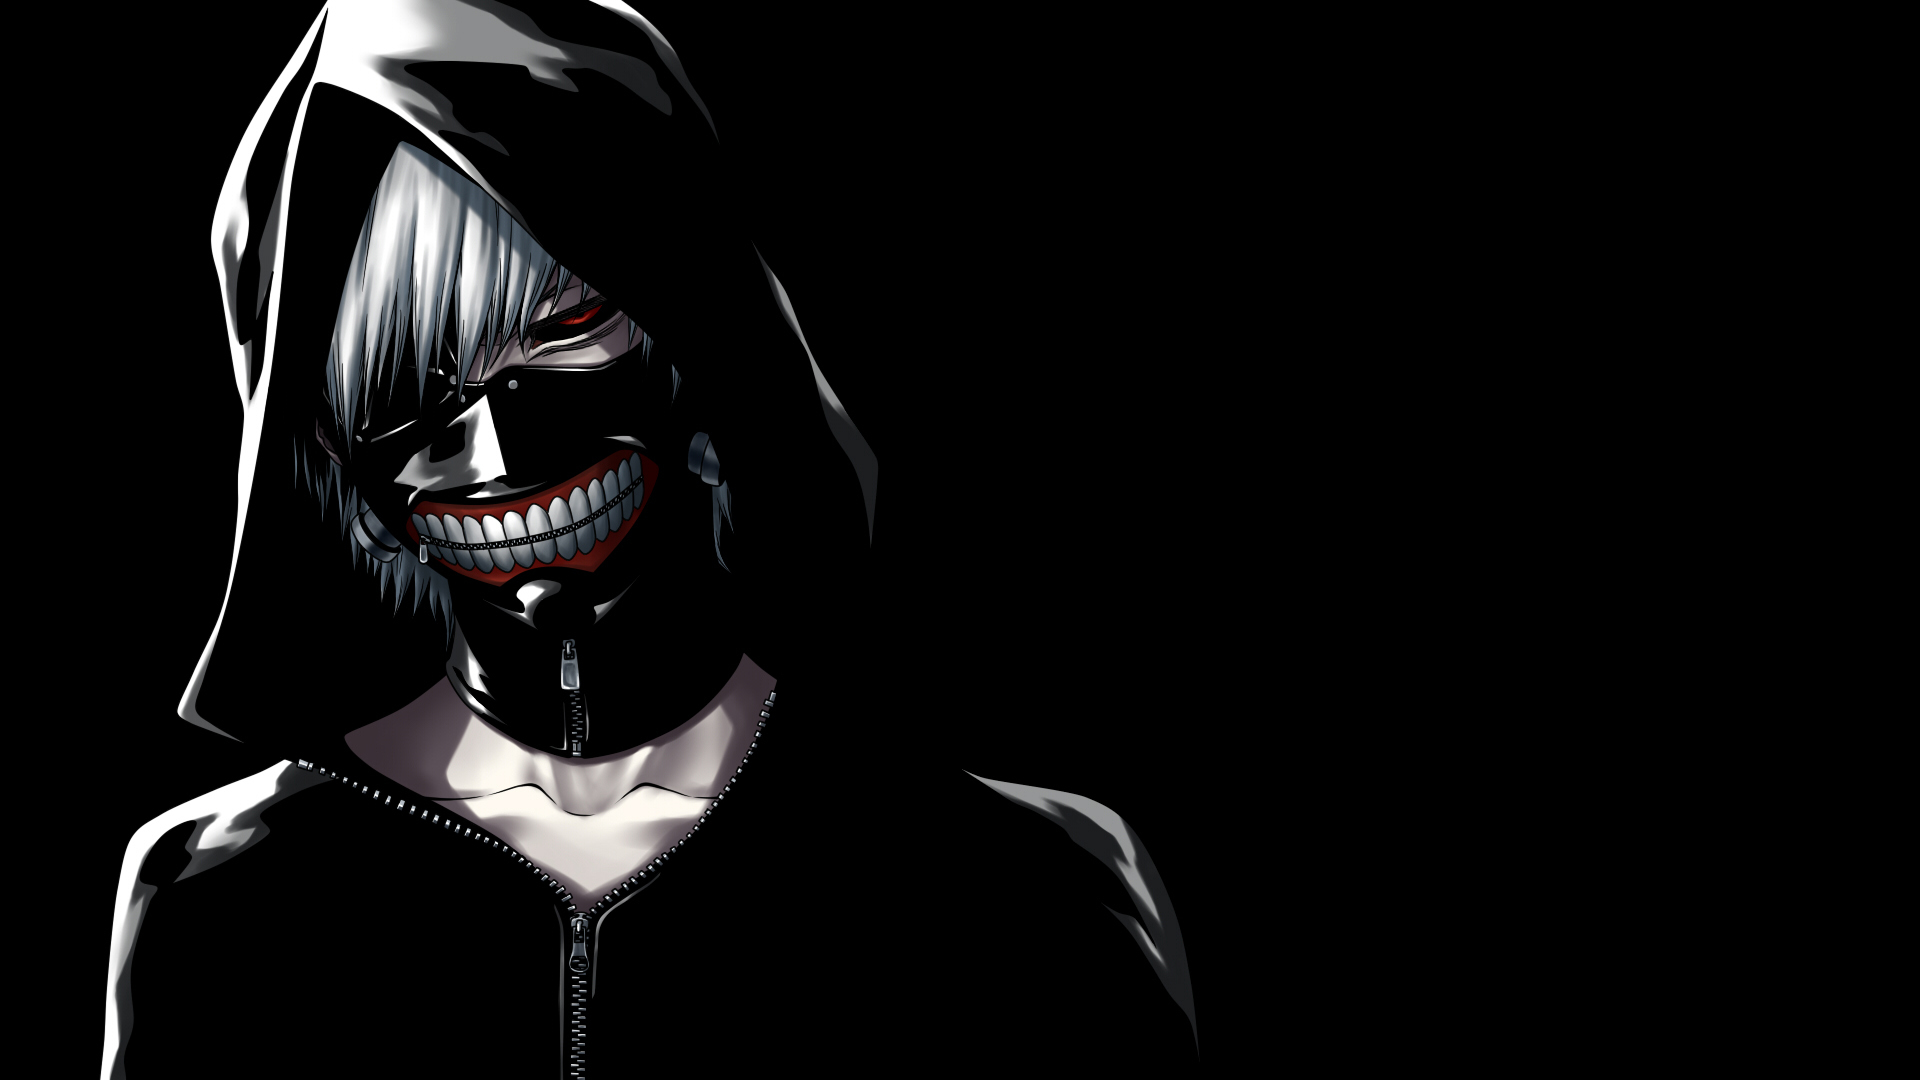 Tokyo Ghoul Wallpapers Best Wallpapers